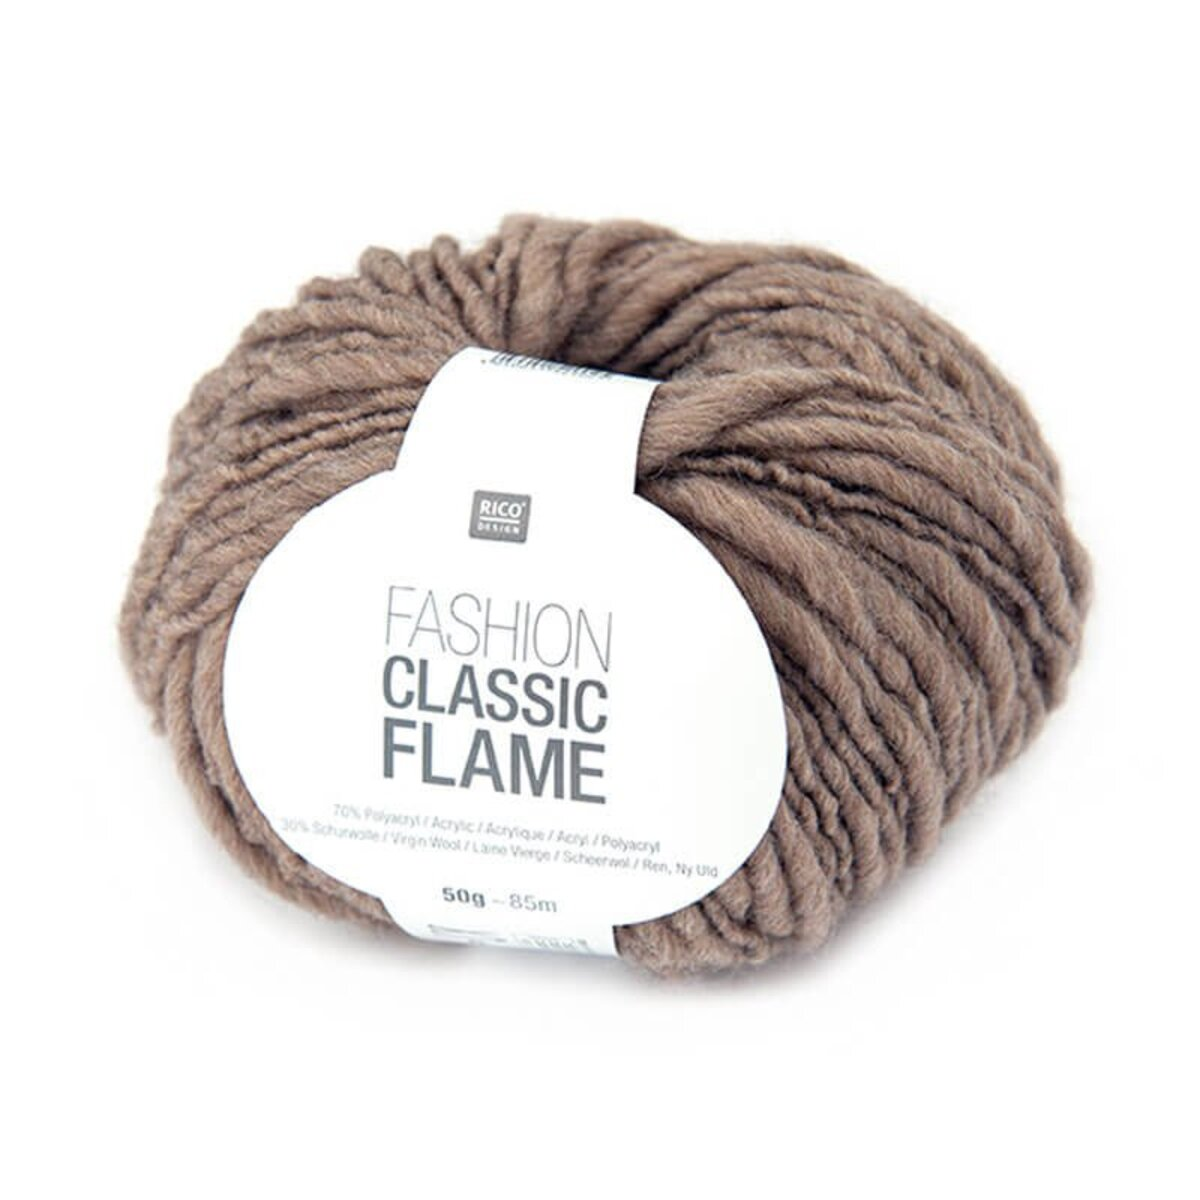 Bild 1 von Rico Design Fashion Classic Flame 50g 85m